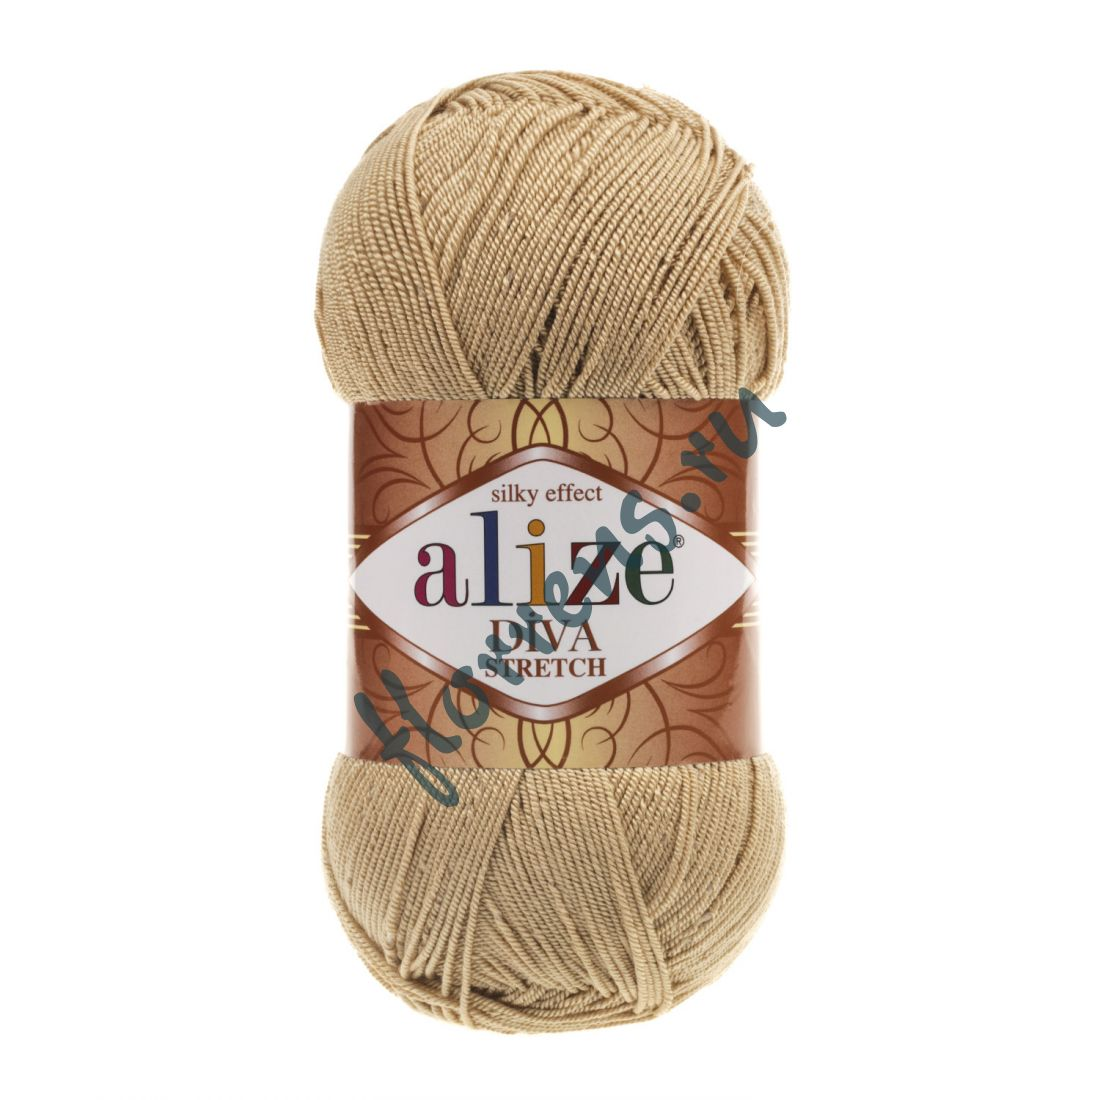 Пряжа Alize Diva Stretch / 368 беж